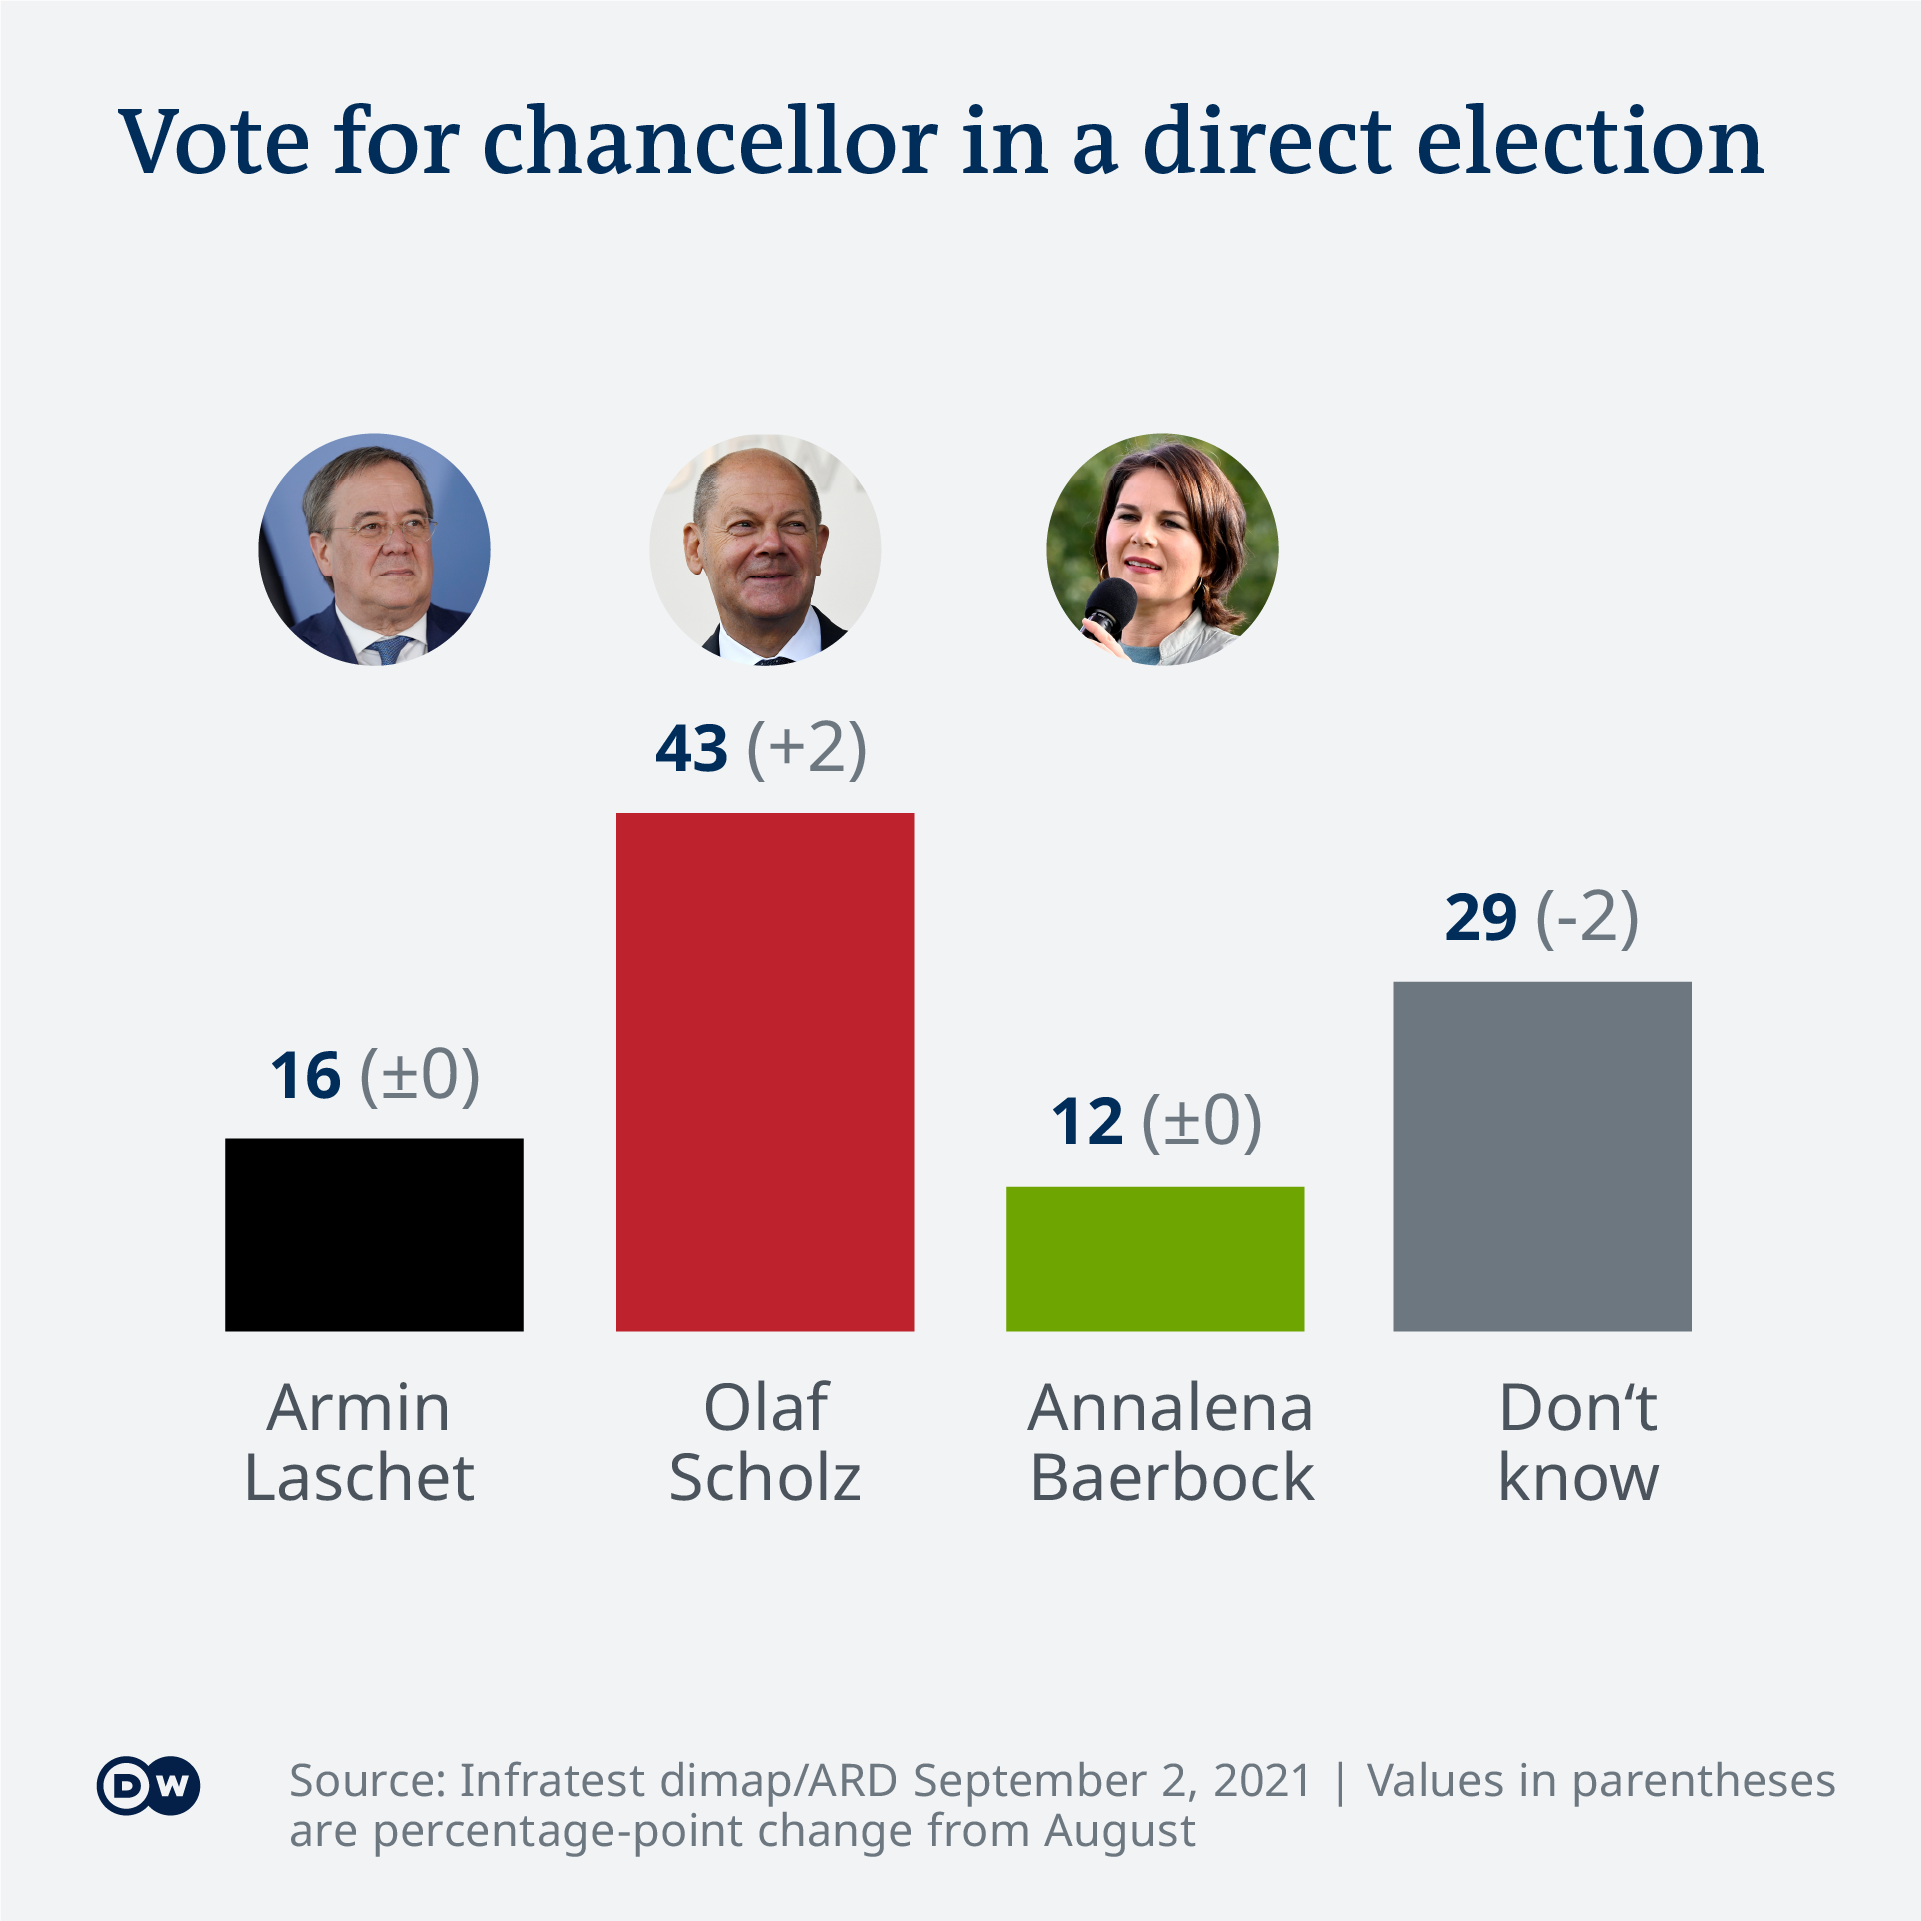 Infographic showing the popularity of the top three chancellor candidates